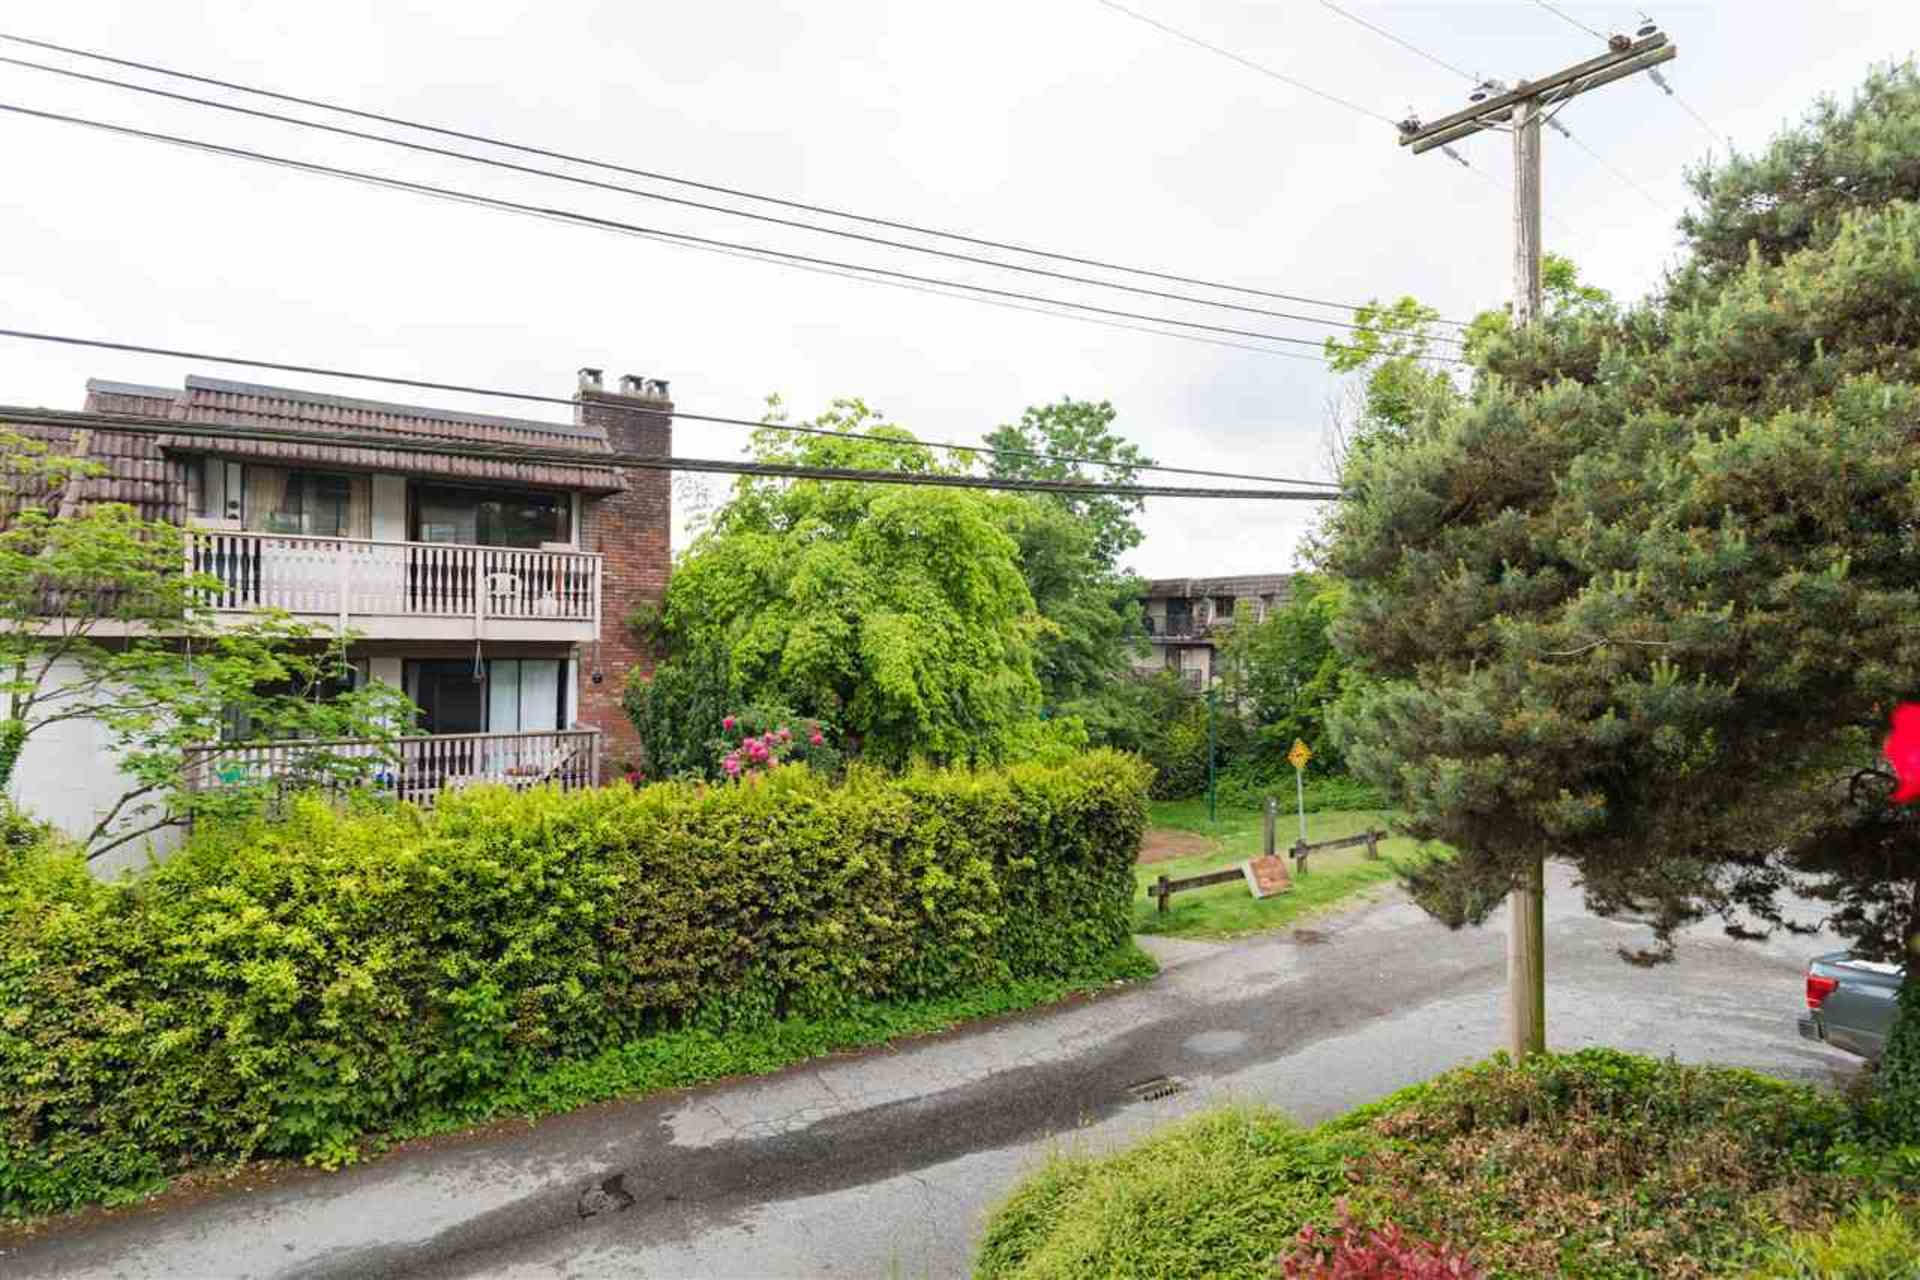 225-w-3rd-street-lower-lonsdale-north-vancouver-19 at 103 - 225 W 3rd Street, Lower Lonsdale, North Vancouver